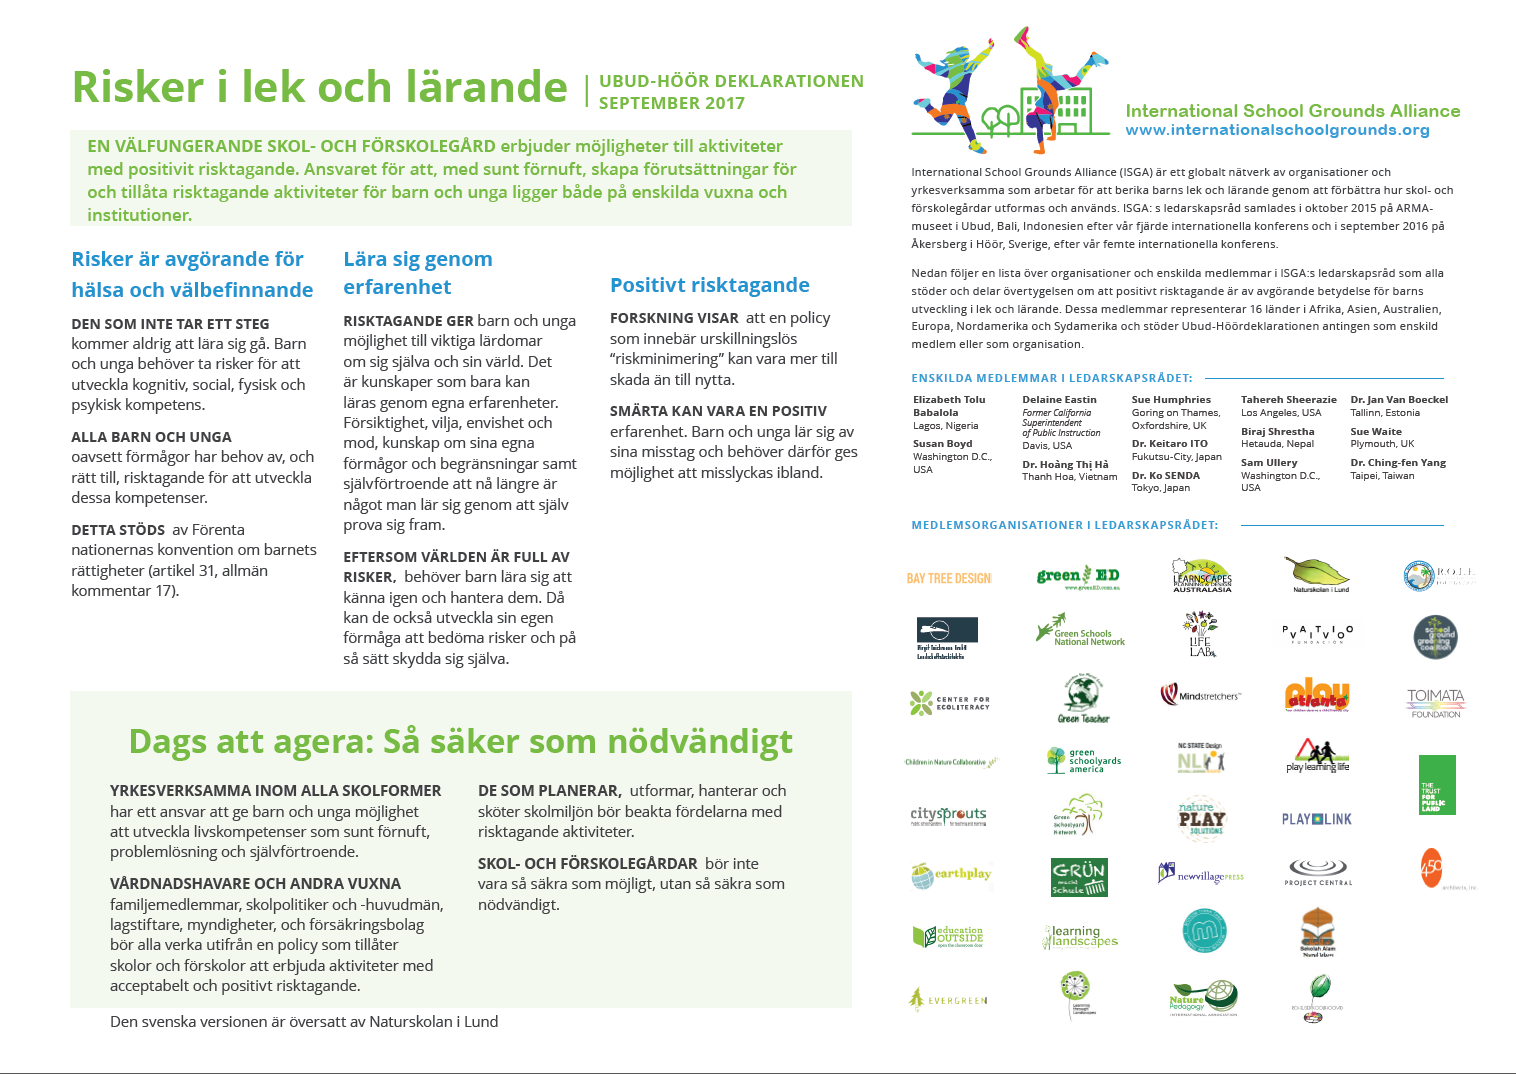 Click here to download the Declaration in Swedish / Svenska.